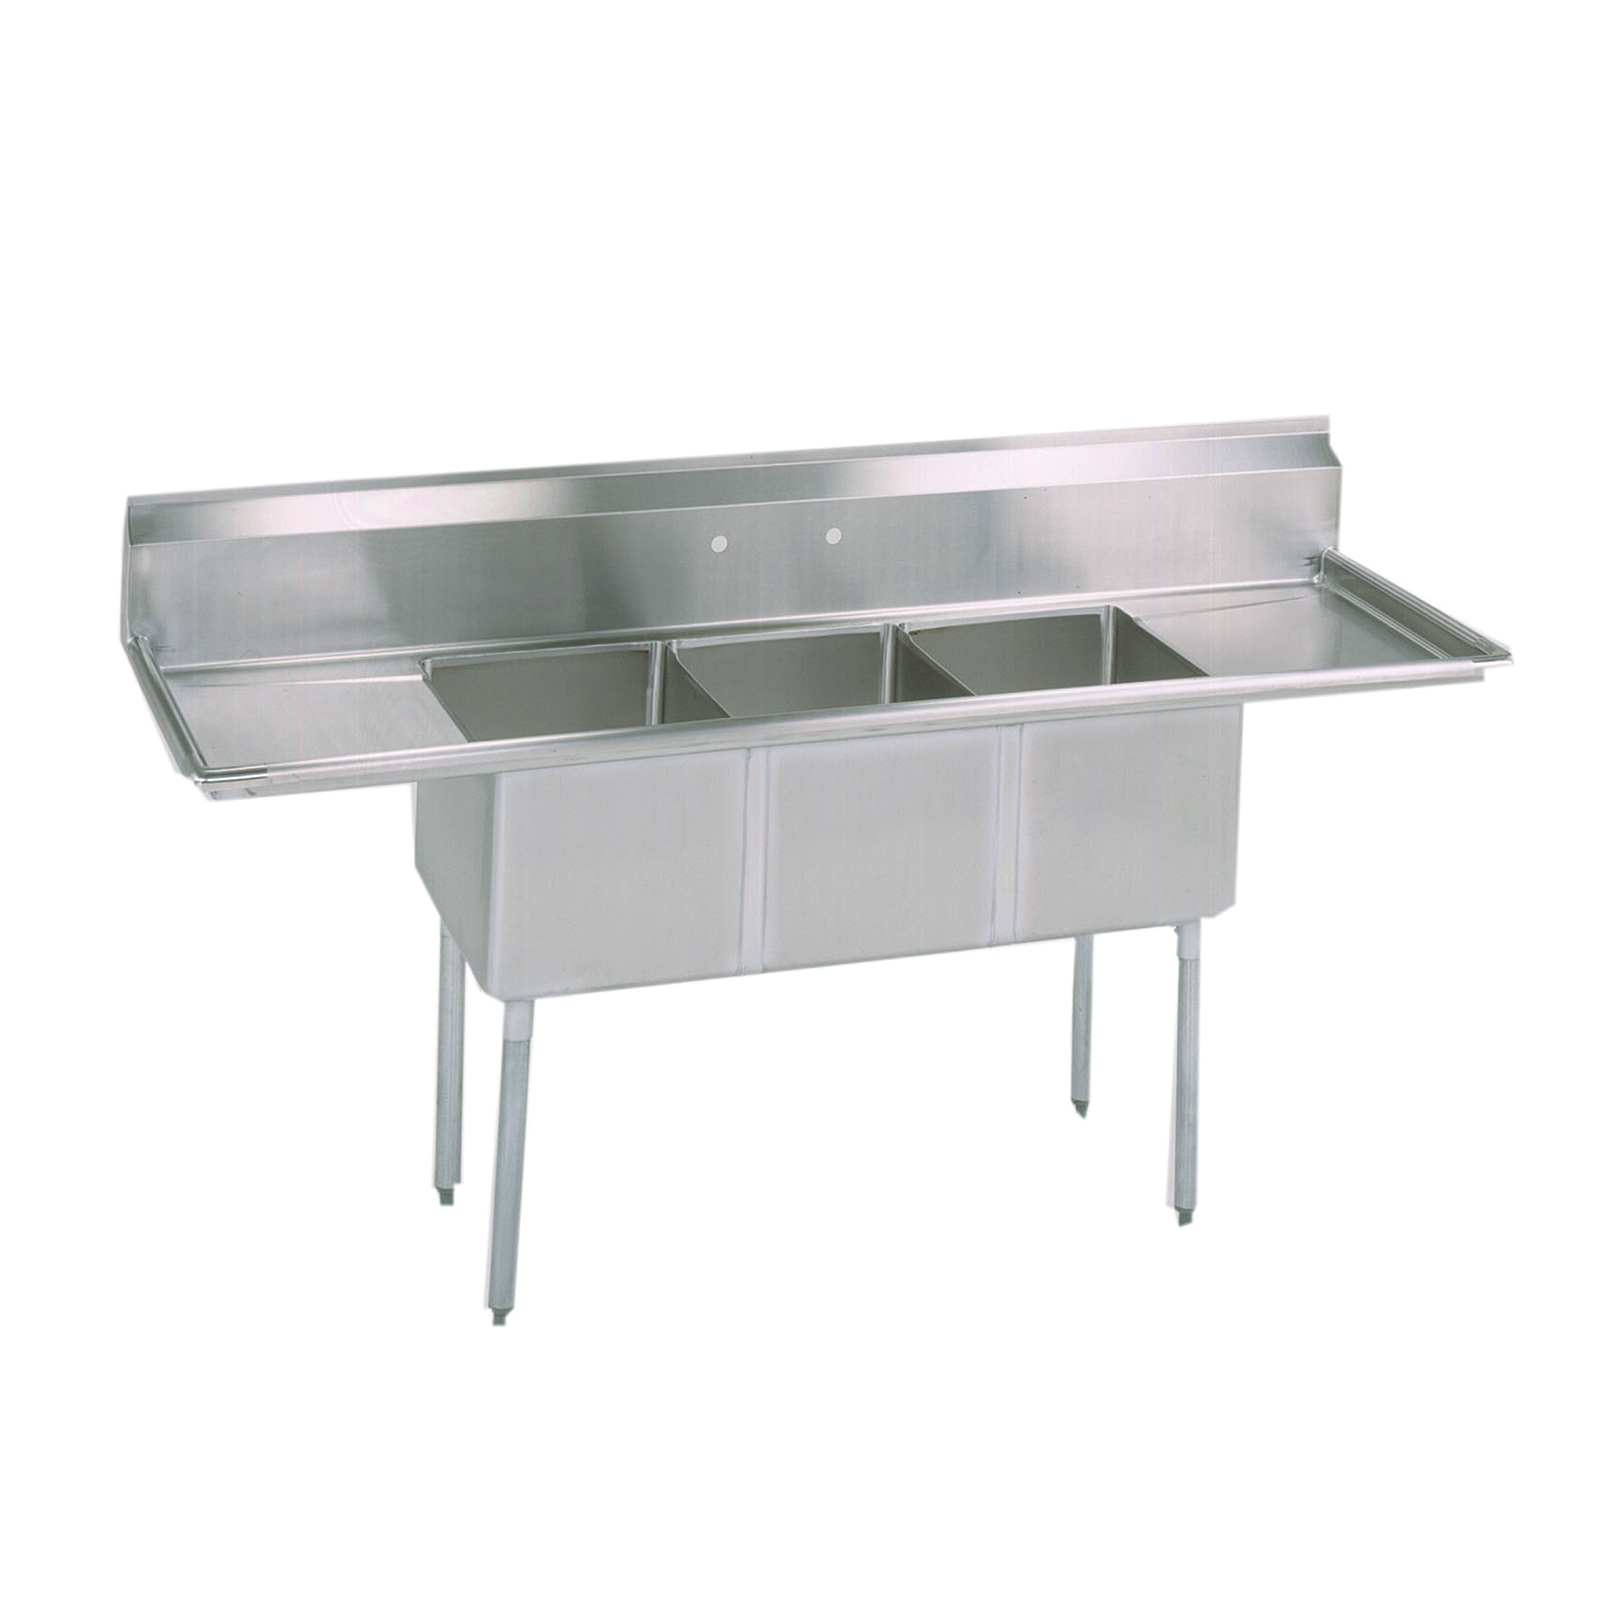 BK Resources BKS-3-20-14-24TS sink, (3) three compartment